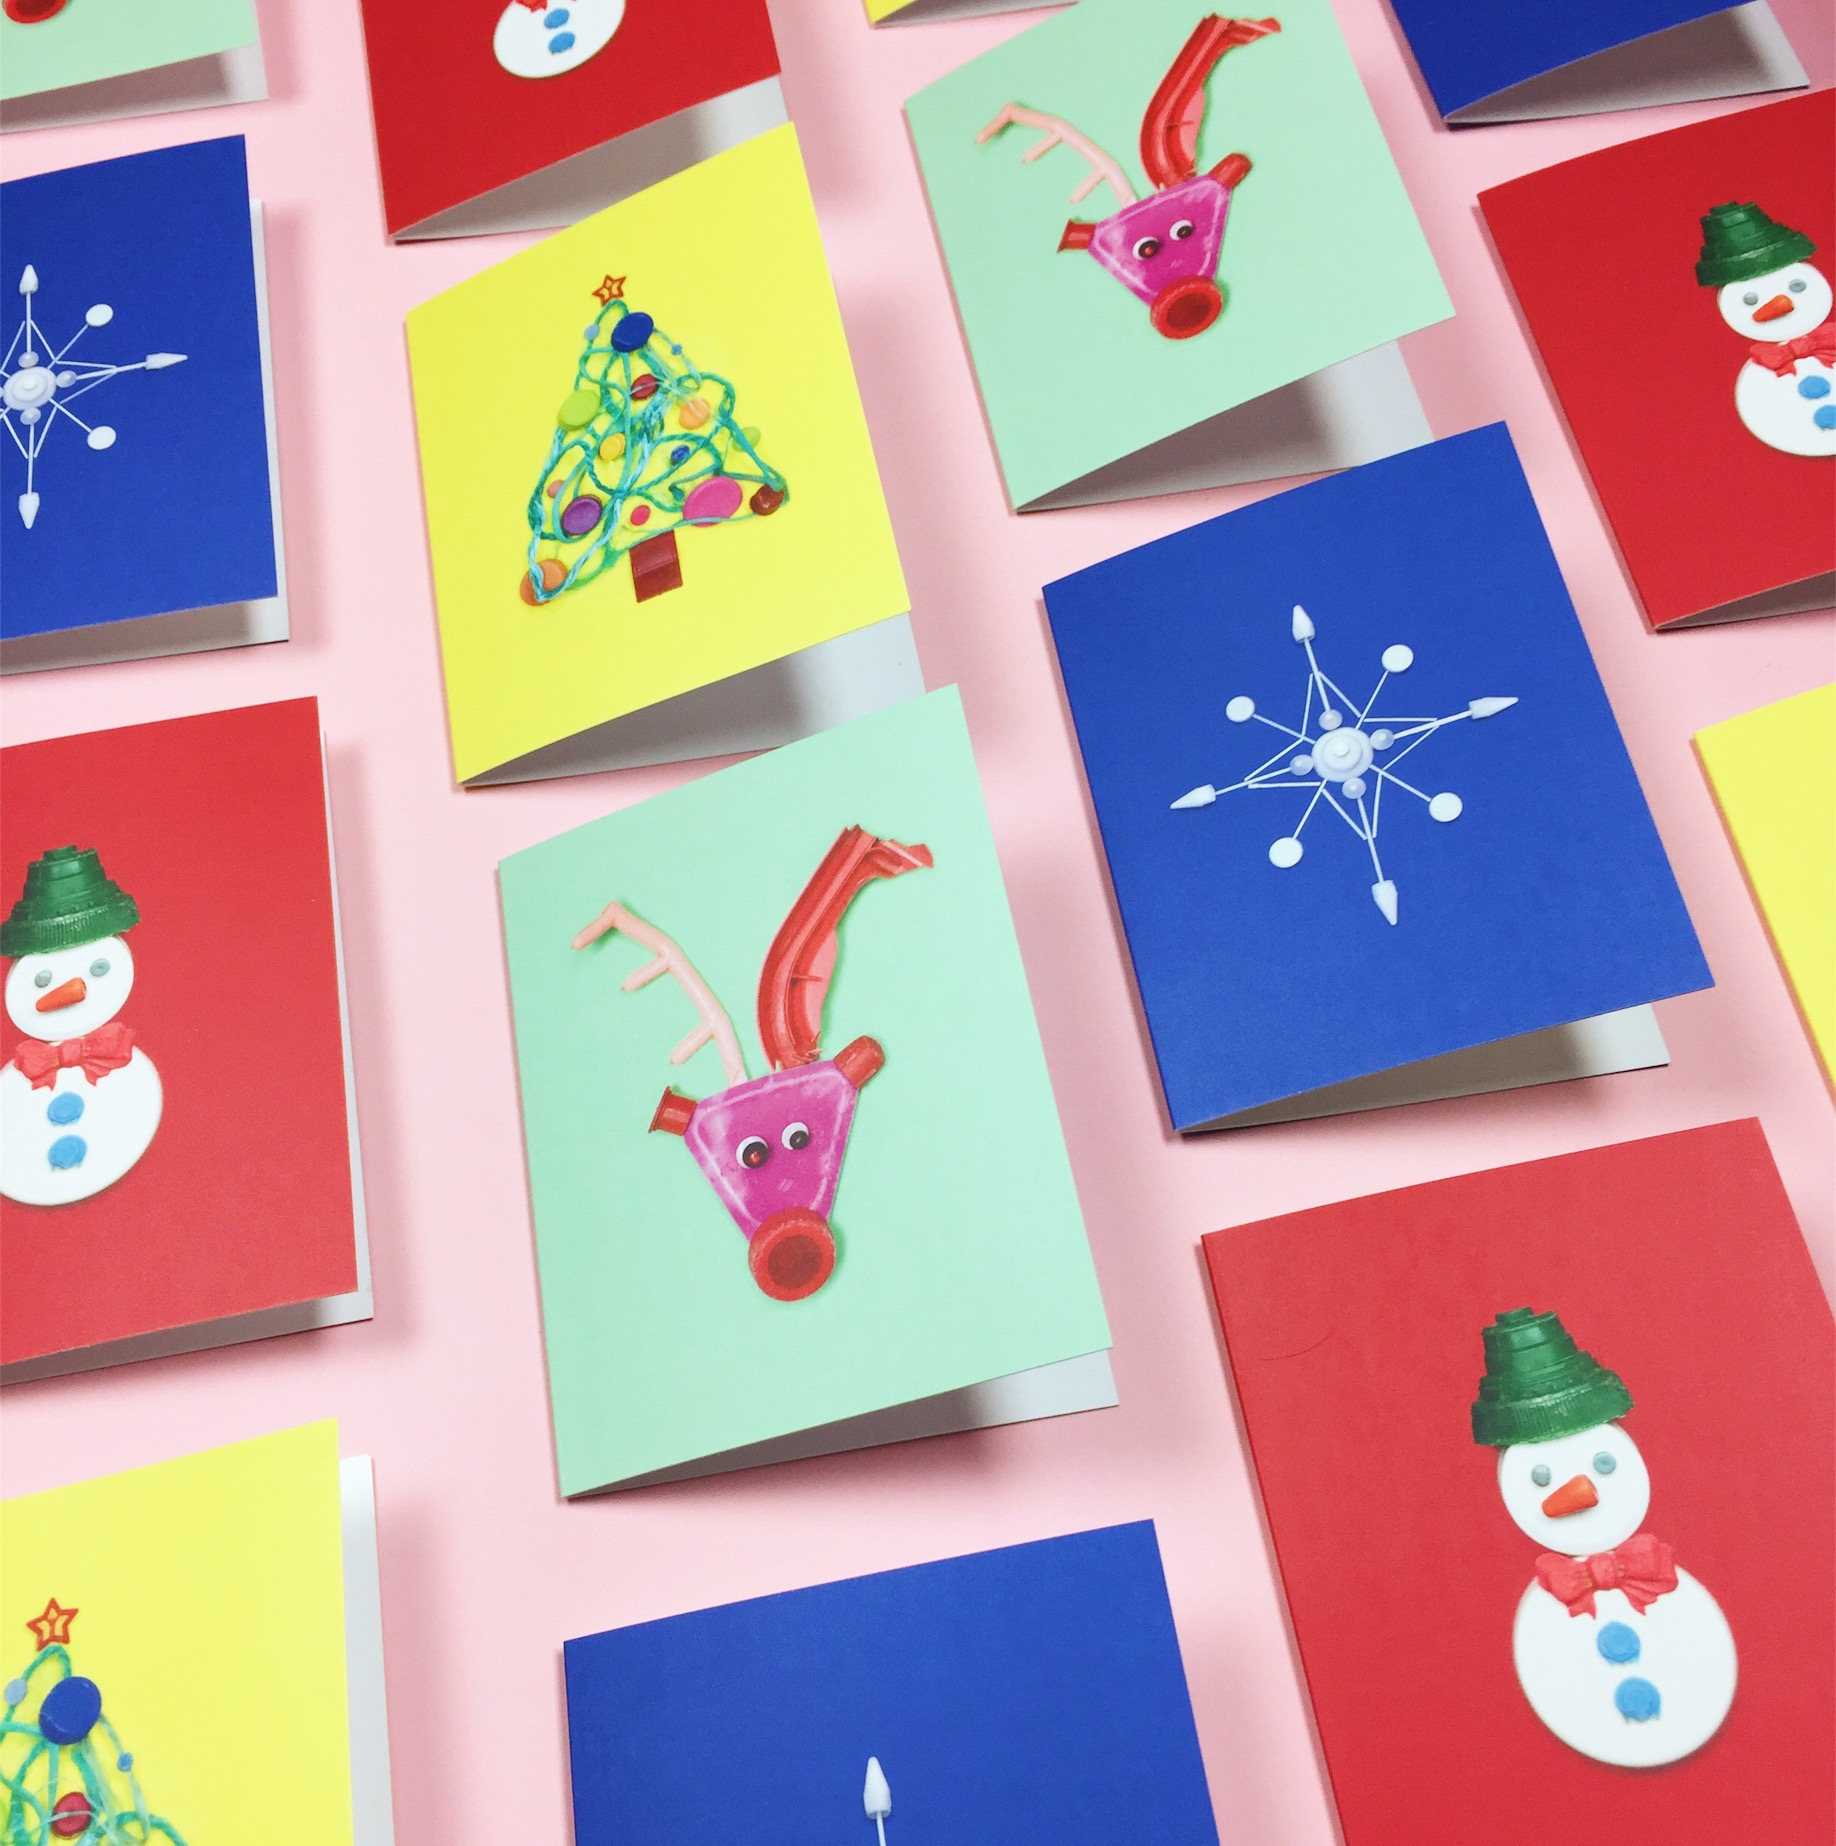 amy_chen_design_2018_highlight_reel_13_beach_plastic_holiday_cards.jpeg